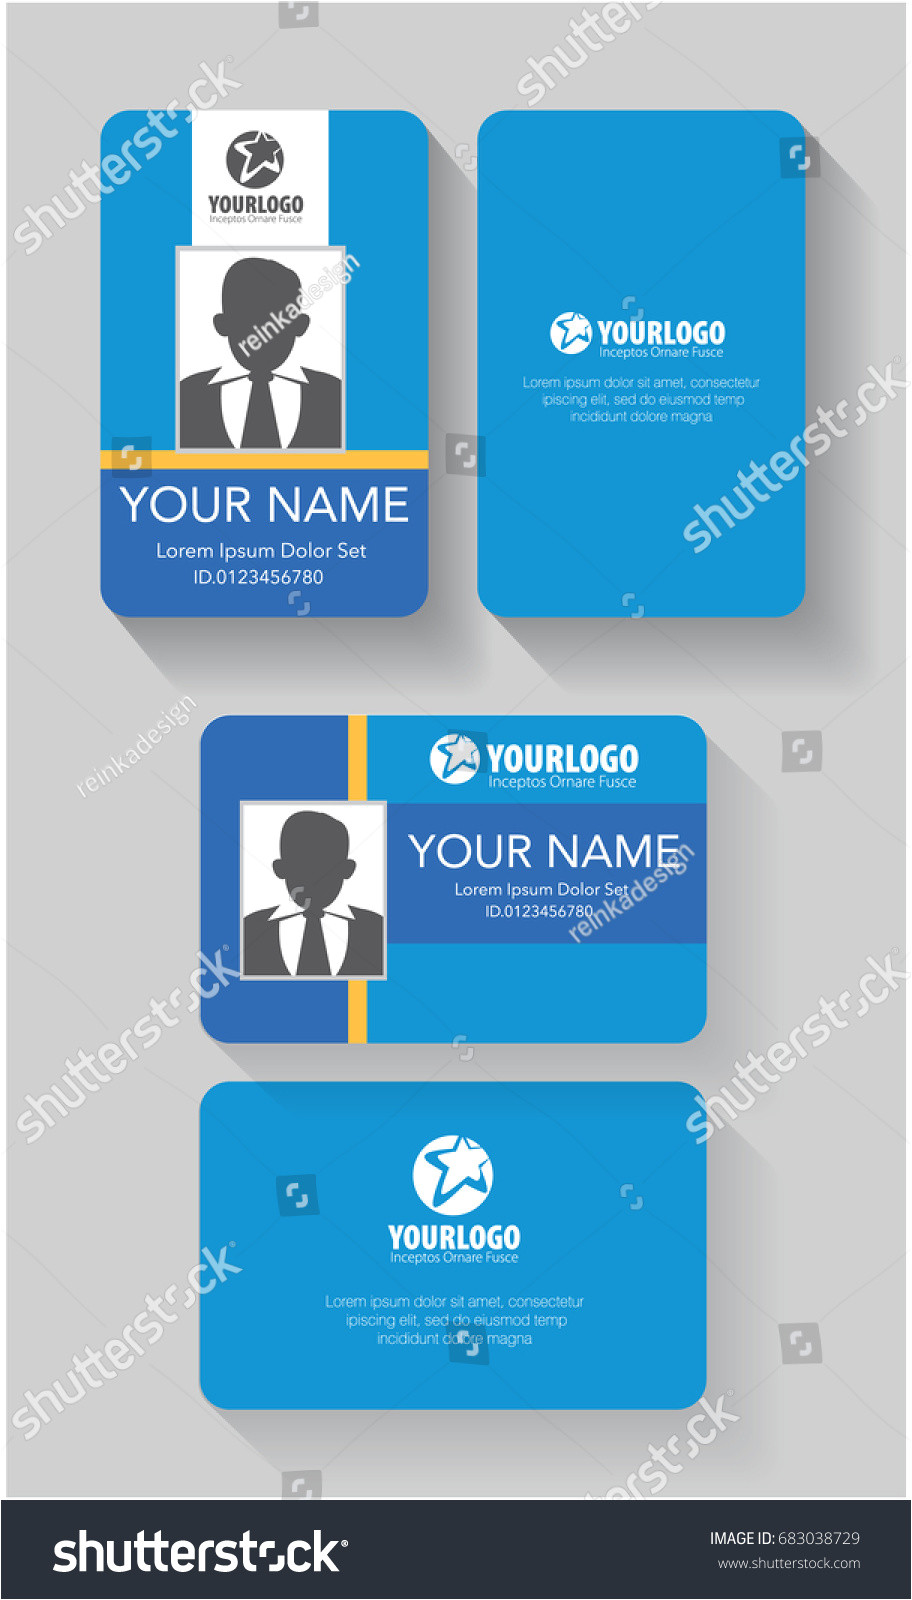 stock vector creative id card template with abstract blue element background design 683038729 jpg